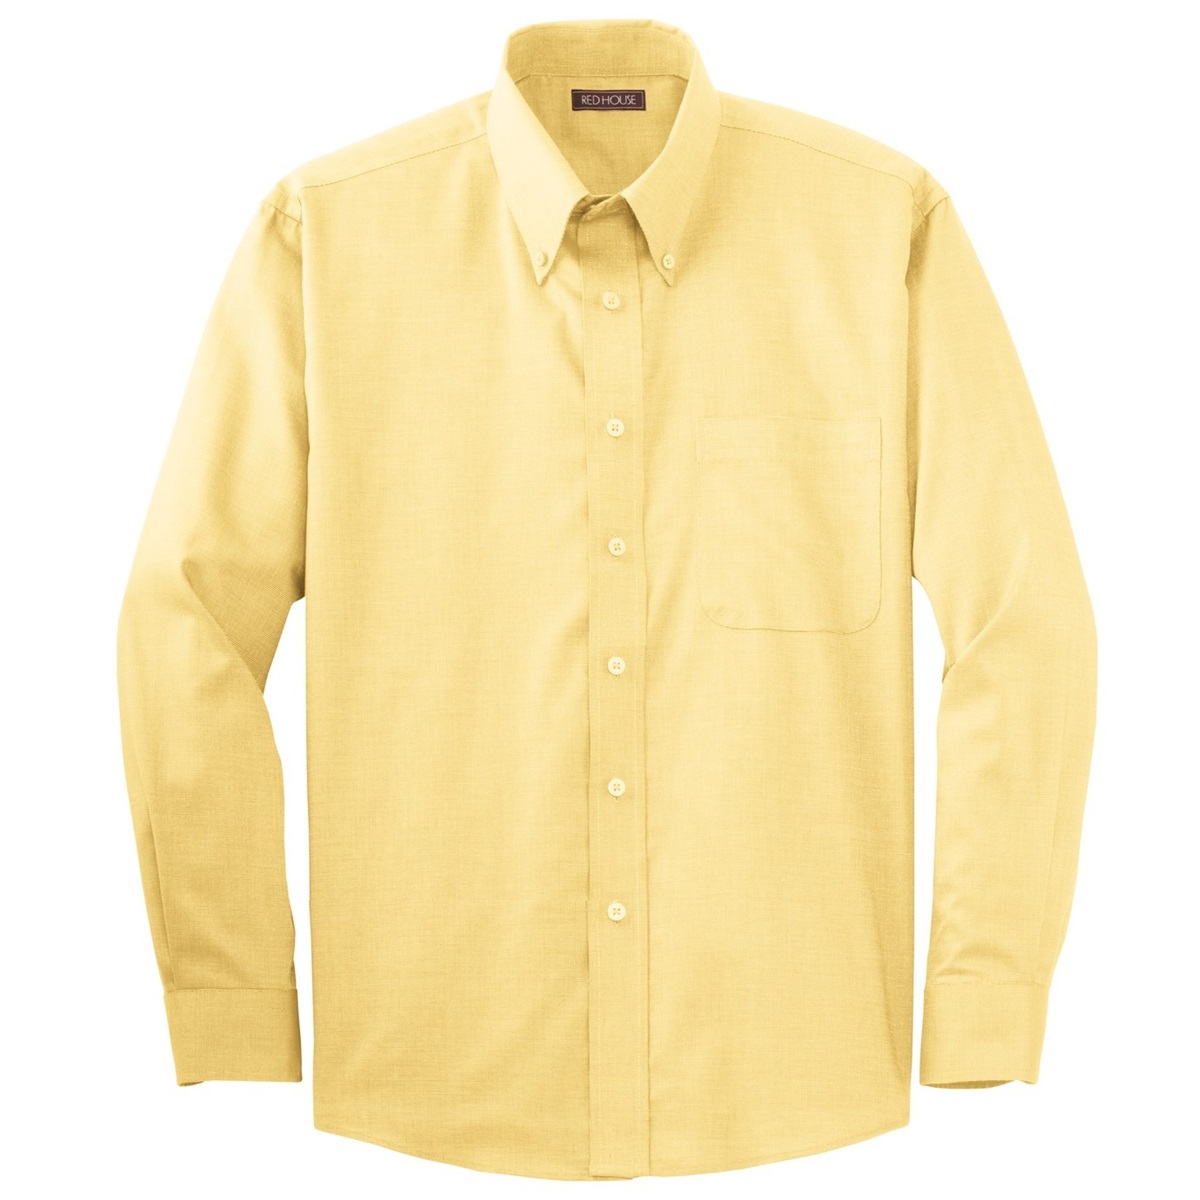 Yellow Button Down Shirt | Artee Shirt